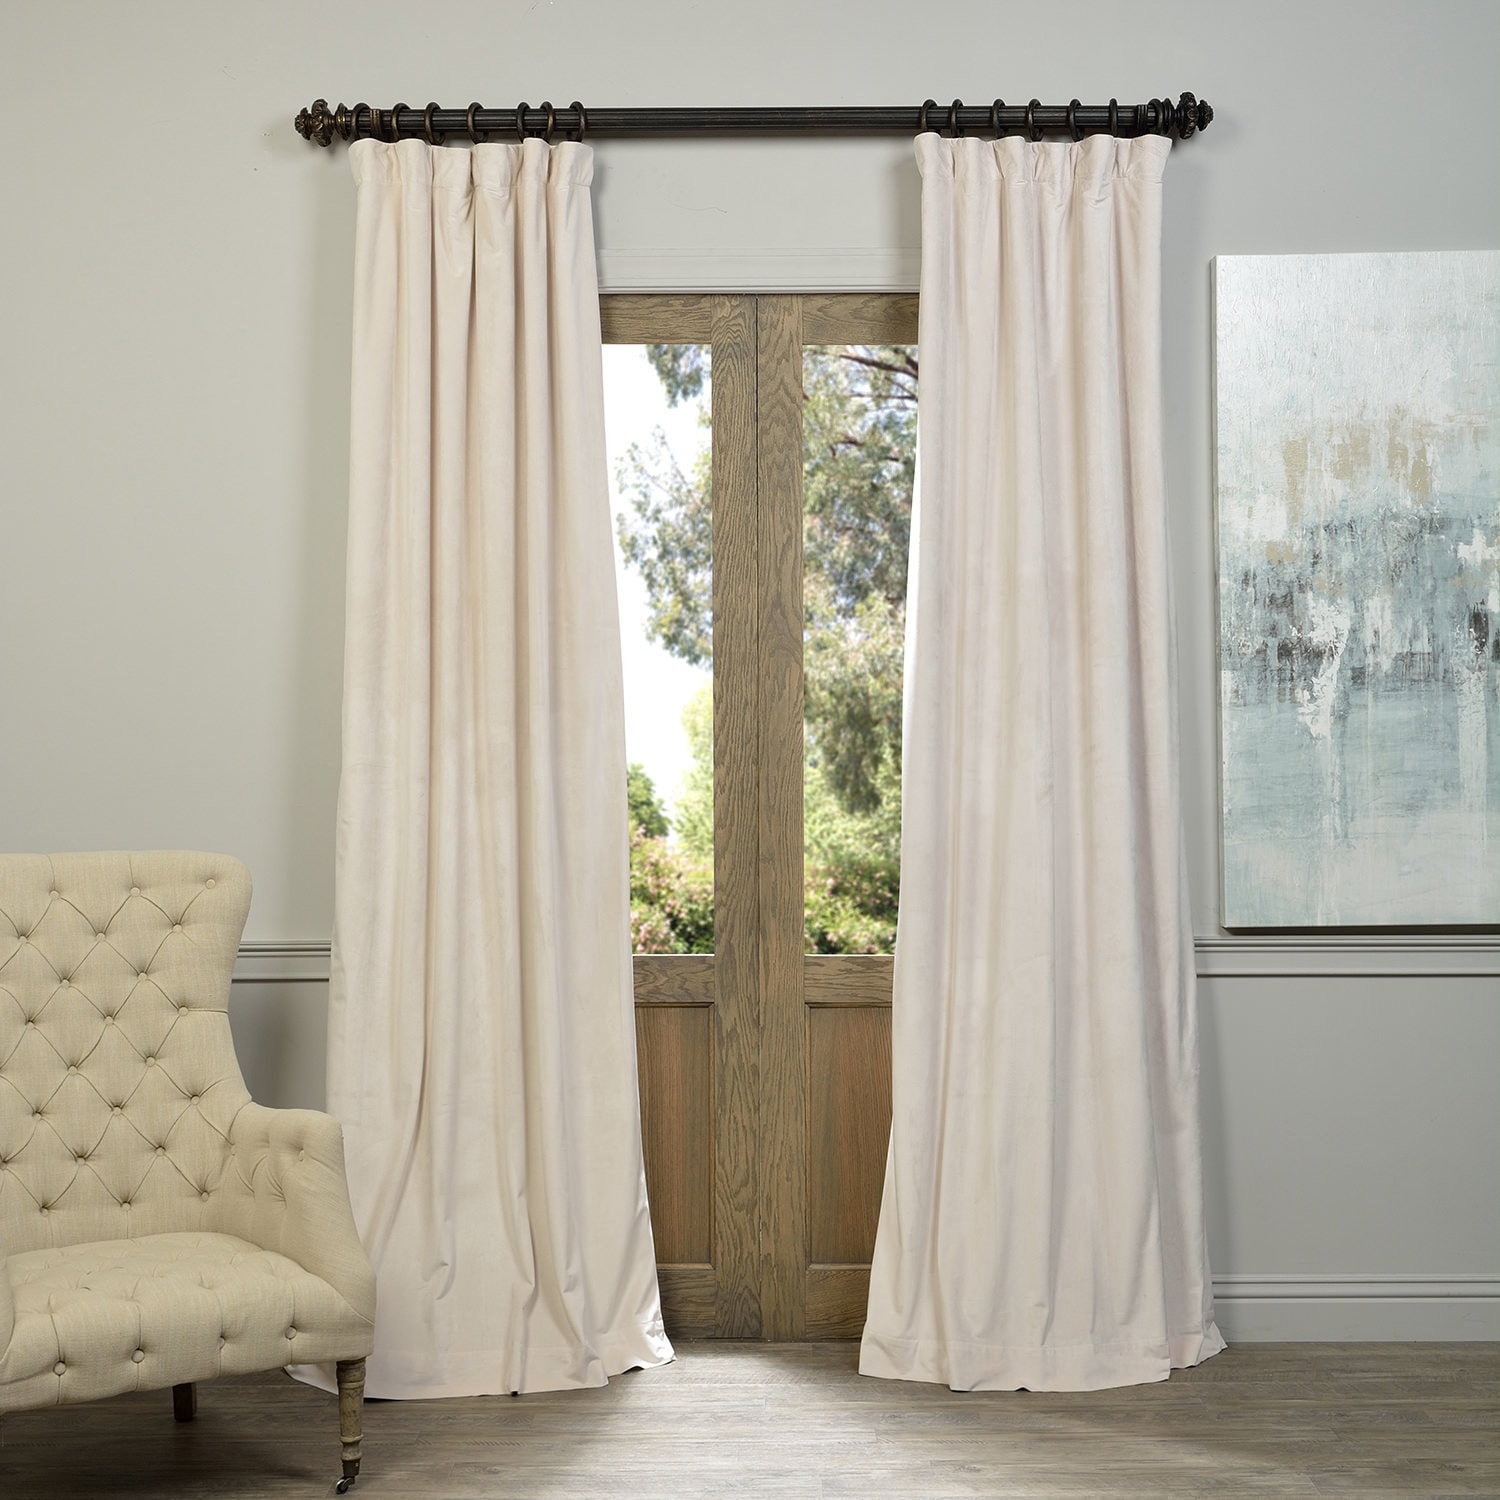 when i fact drapes with except casing sew so basic fine update back were house door running they bought top was scissors over at drapery inherited the no for we thought ivory